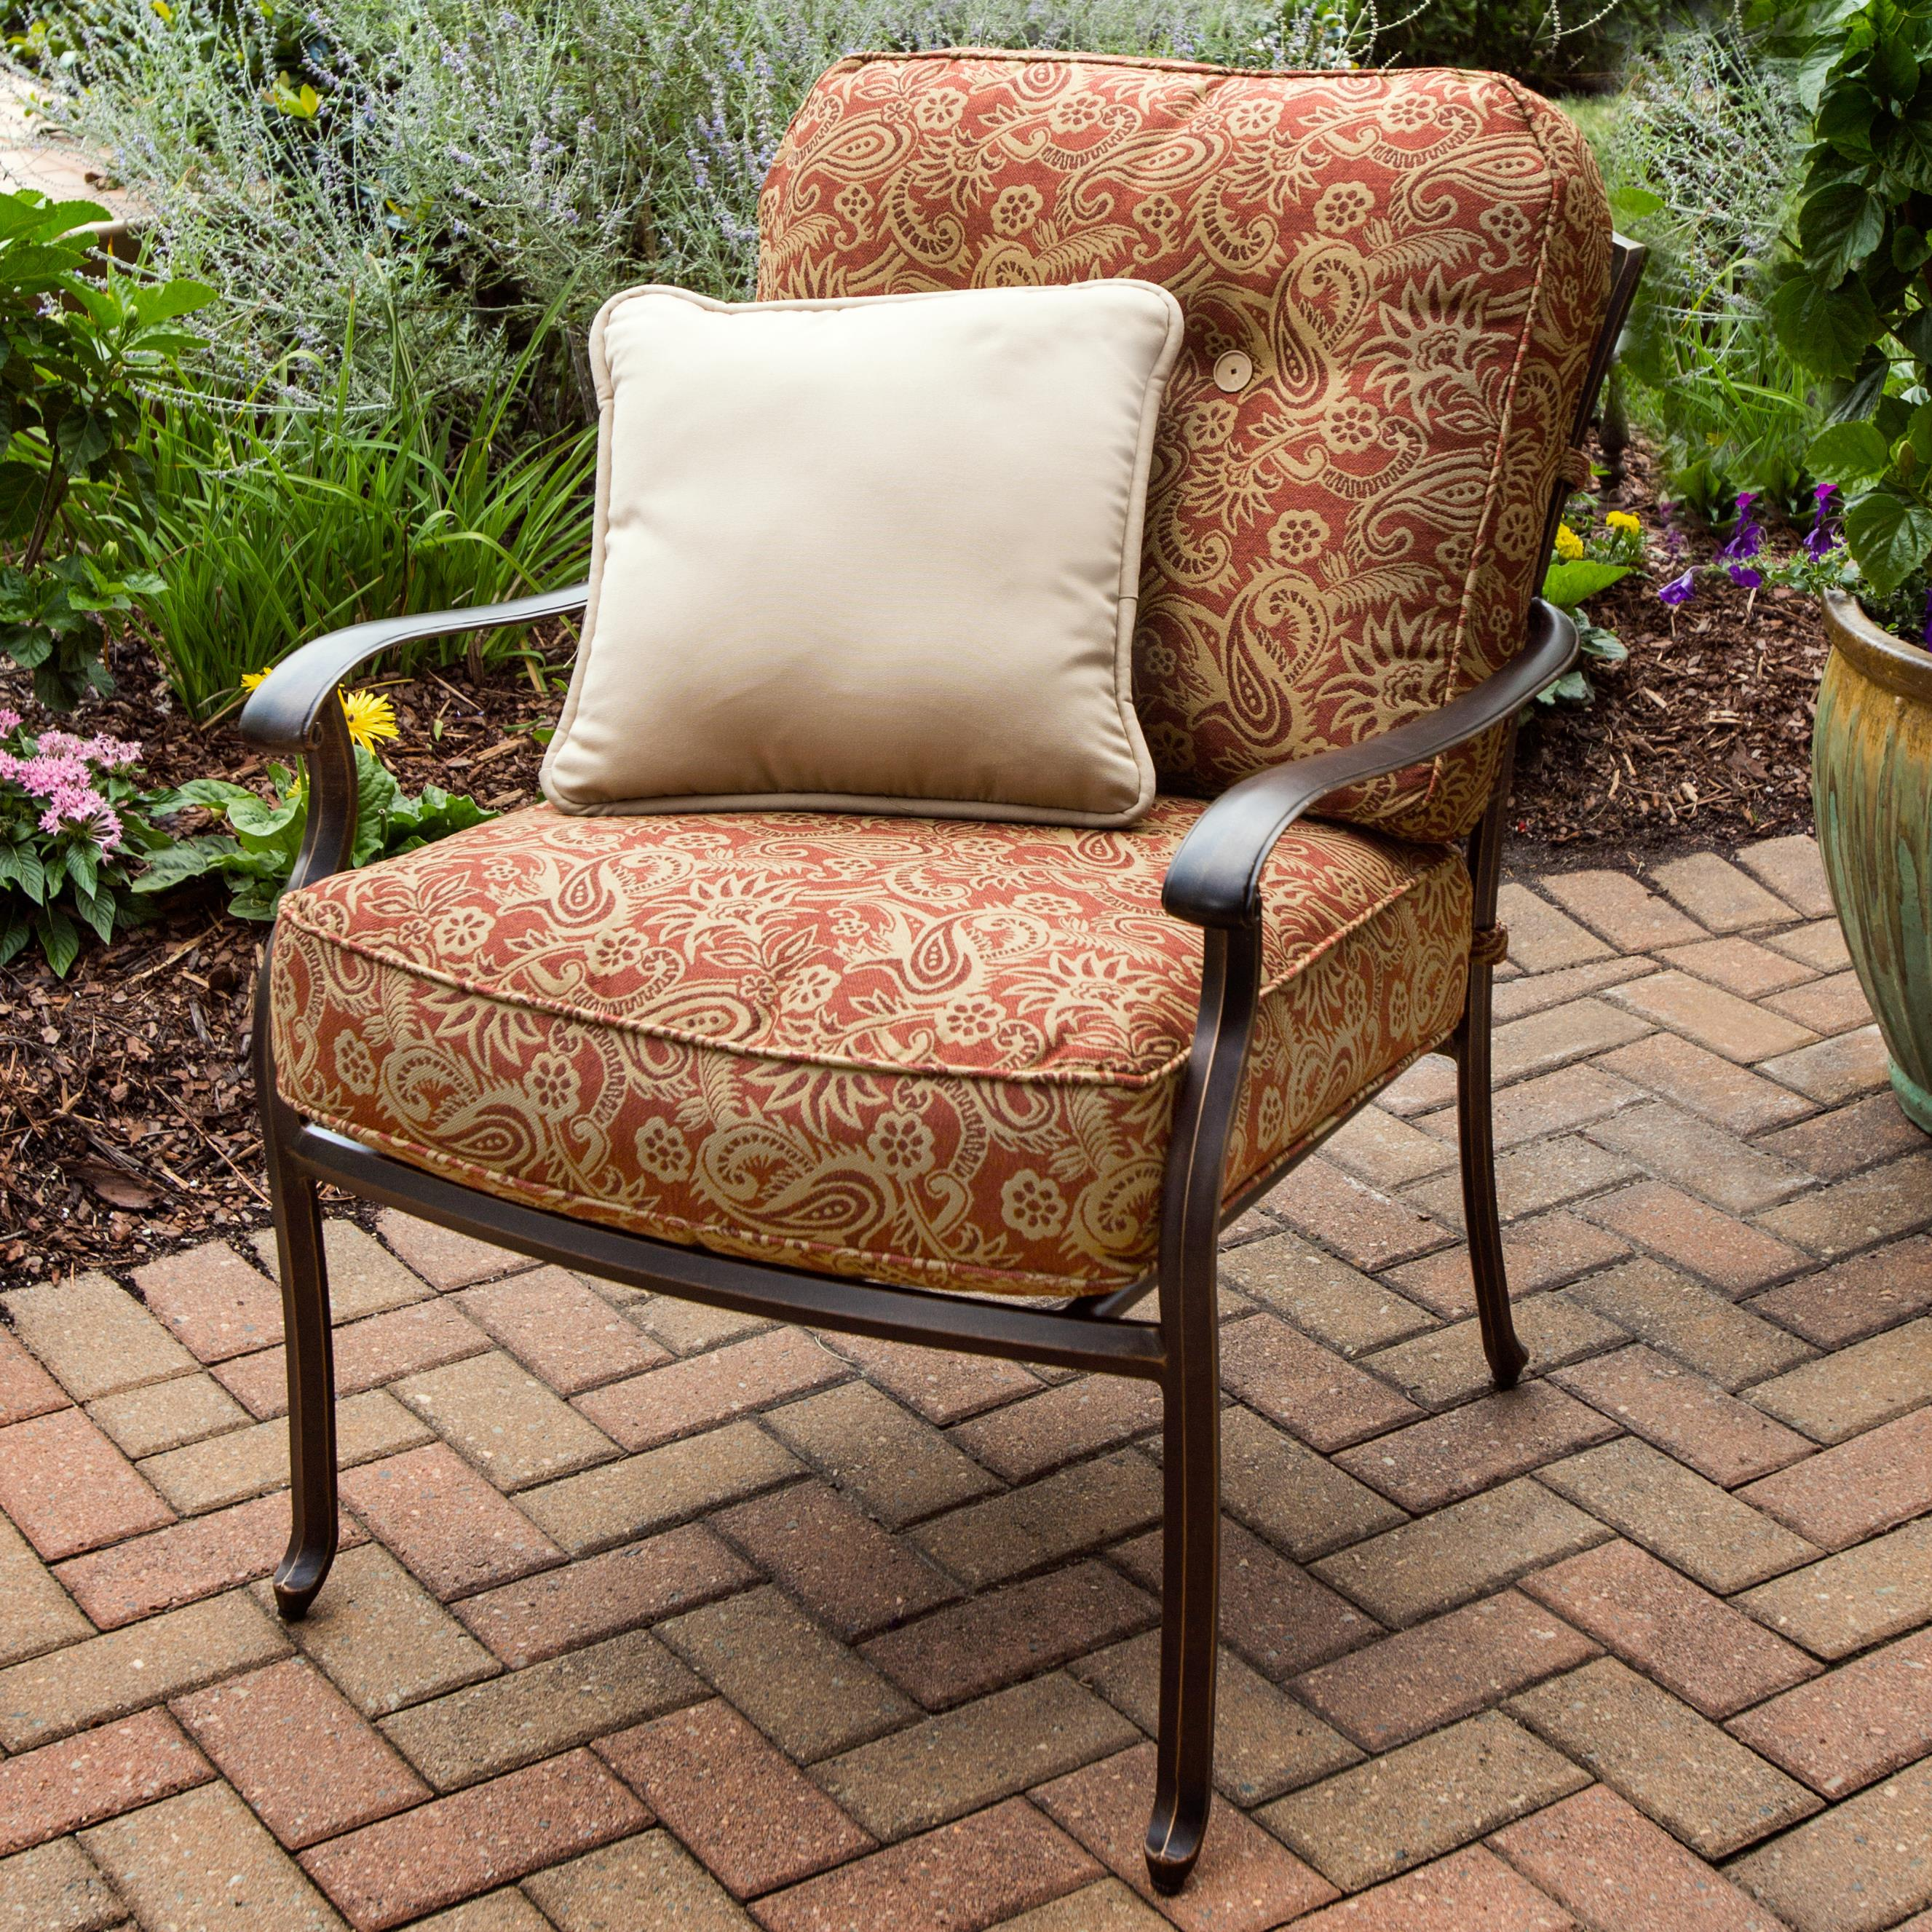 Agio Heritage Alumicast Deep Seat Outdoor Lounge Chair with